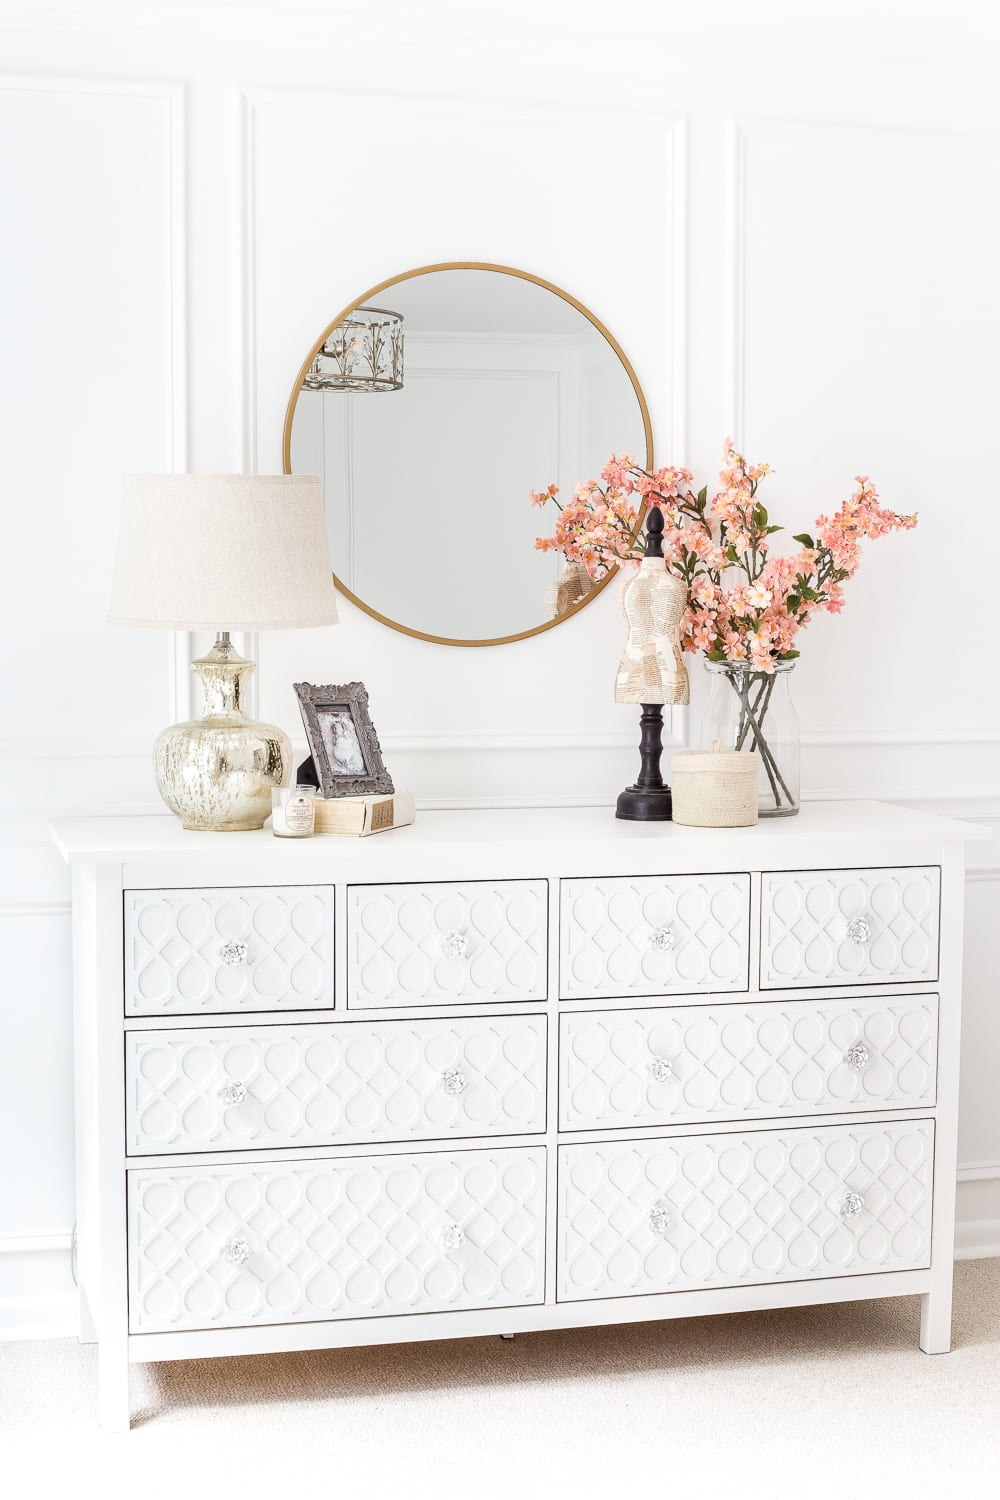 This dresser is a gorgeous farmhouse diy that gives this simple white room an extra touch of elegant style